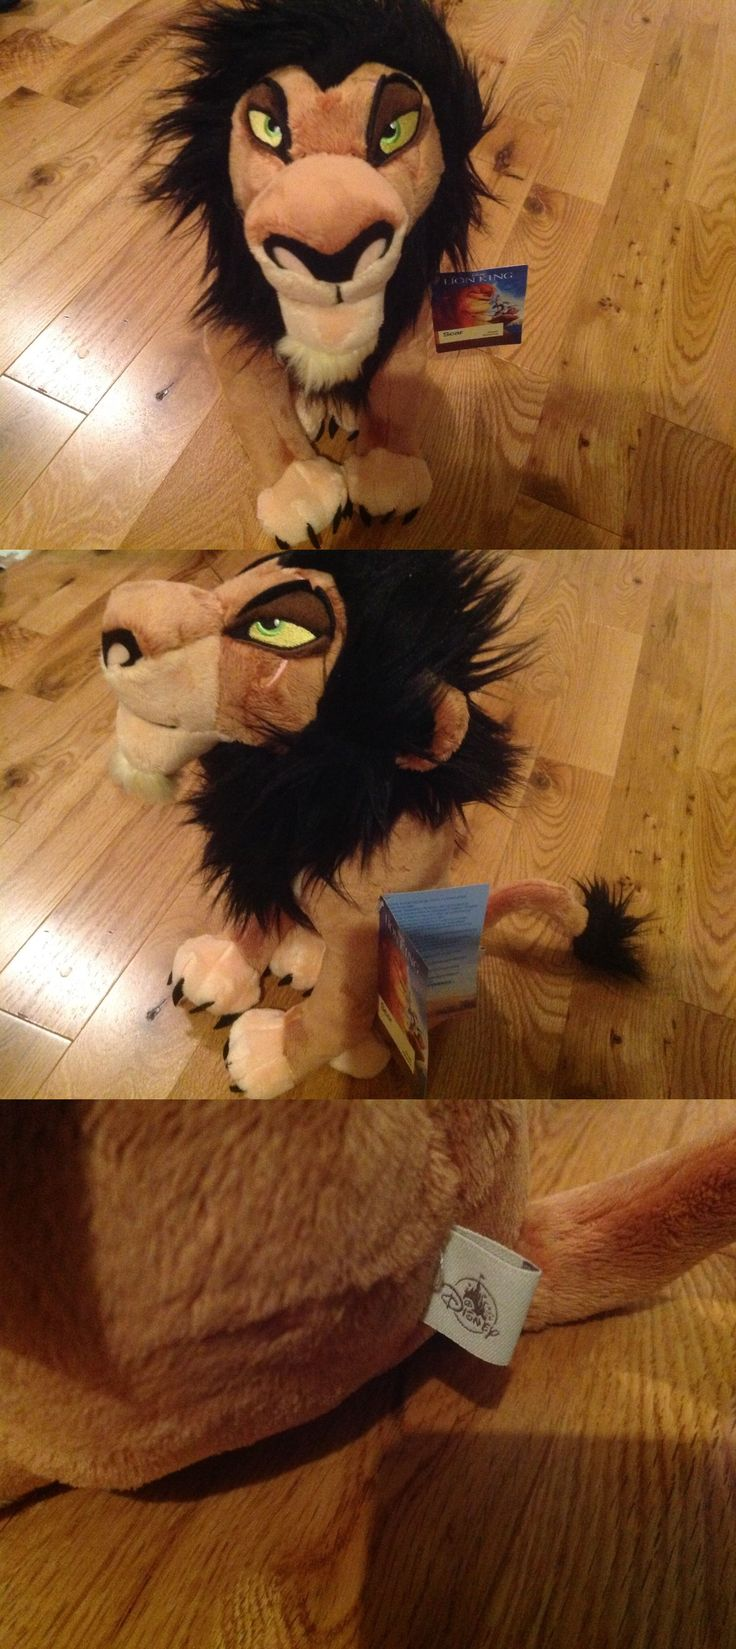 Lion King 44037: Scar Plush Toy From The Lion King From The Disney Store! Rare 18 -> BUY IT NOW ONLY: $58.88 on eBay!